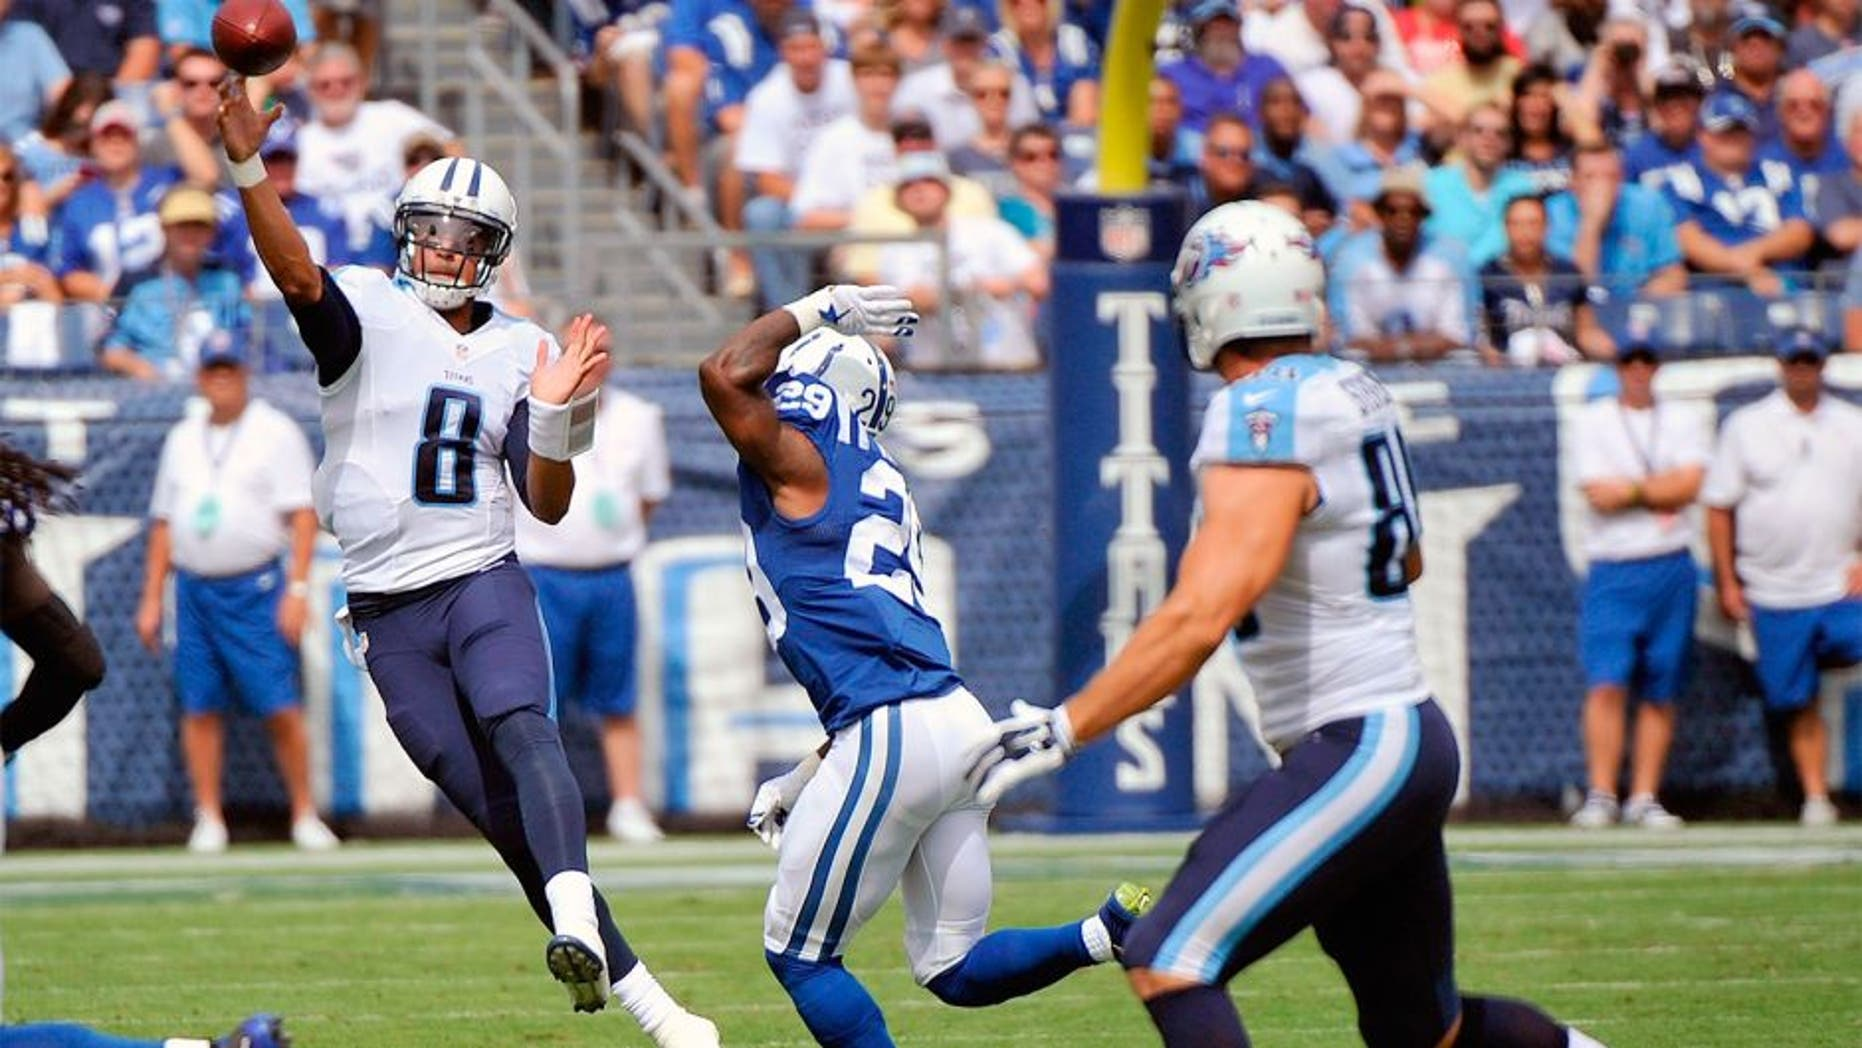 NASHVILLE, TN - SEPTEMBER 27: Quarterback Marcus Mariota #8 of the Tennessee Titans drops back to throw a pass to Craig Stevens #88 against the Indianapolis Colts at Nissan Stadium on September 27, 2015 in Nashville, Tennessee. (Photo by Frederick Breedon/Getty Images)